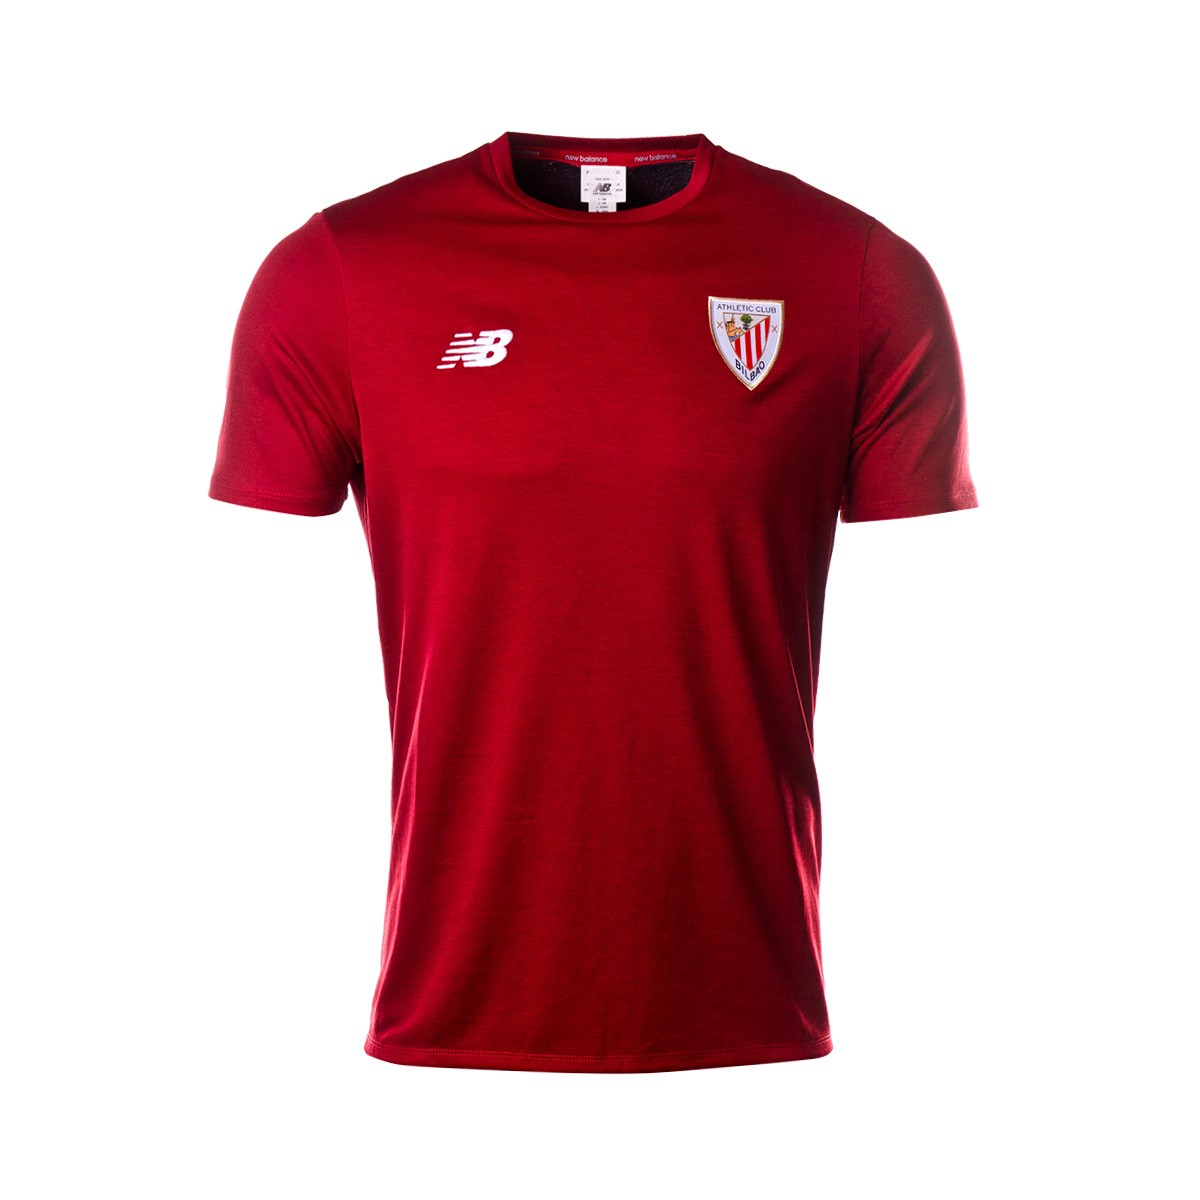 Maillot entrainement Athletic Club 2018